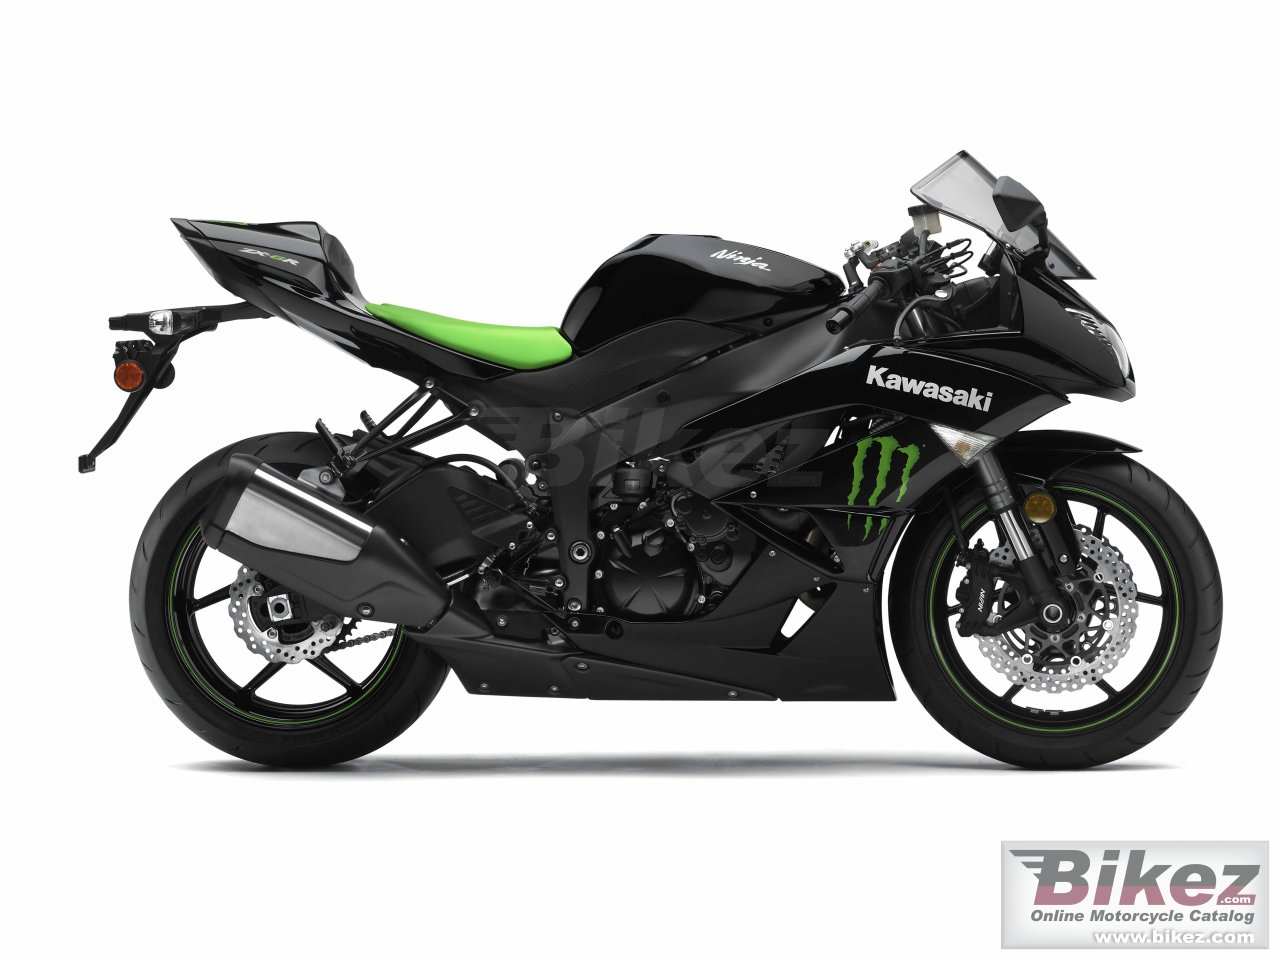 Kawasaki ninja zx-6r monster energy